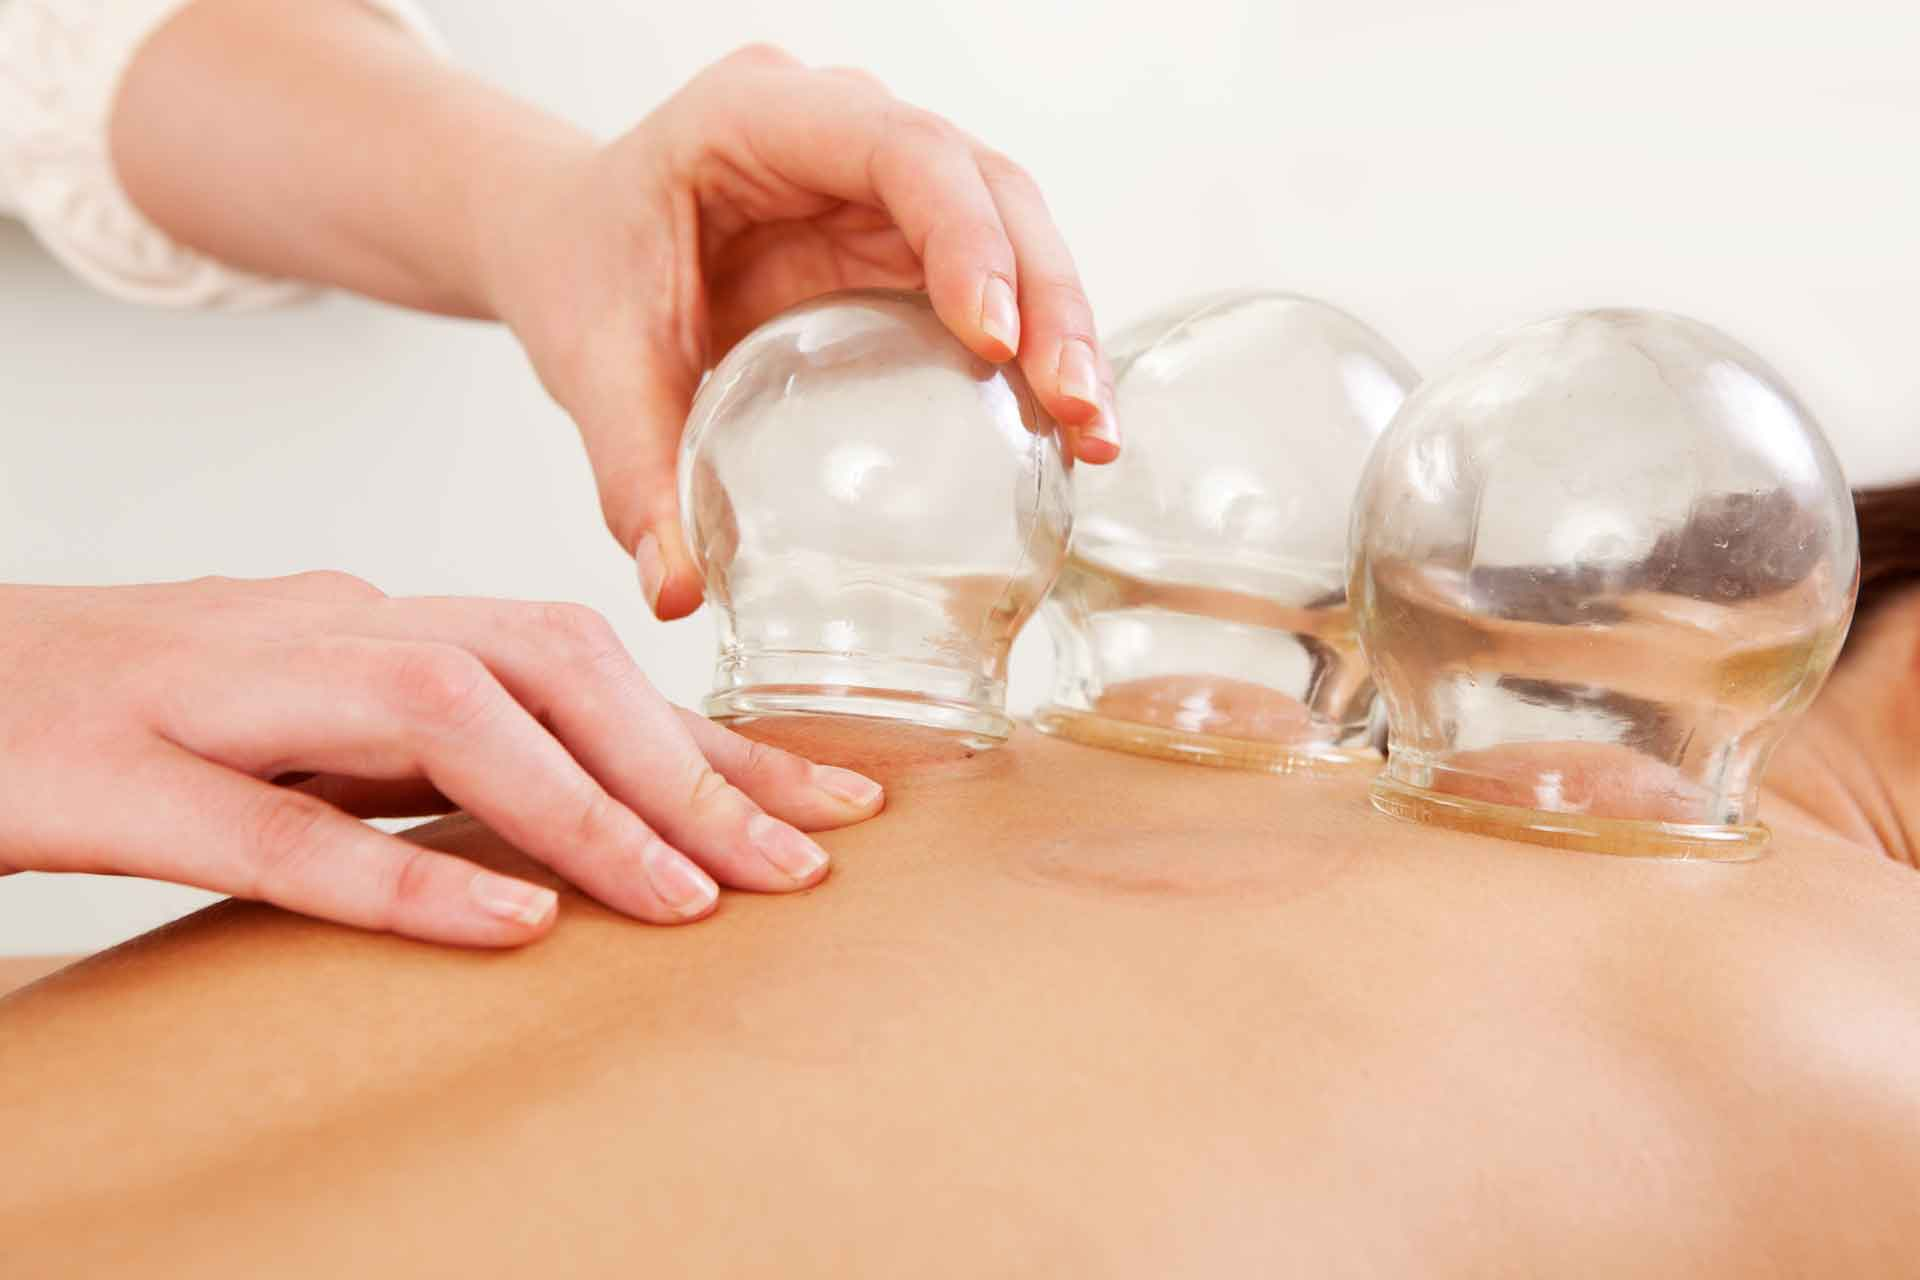 a-person-recieves-cupping-therapy